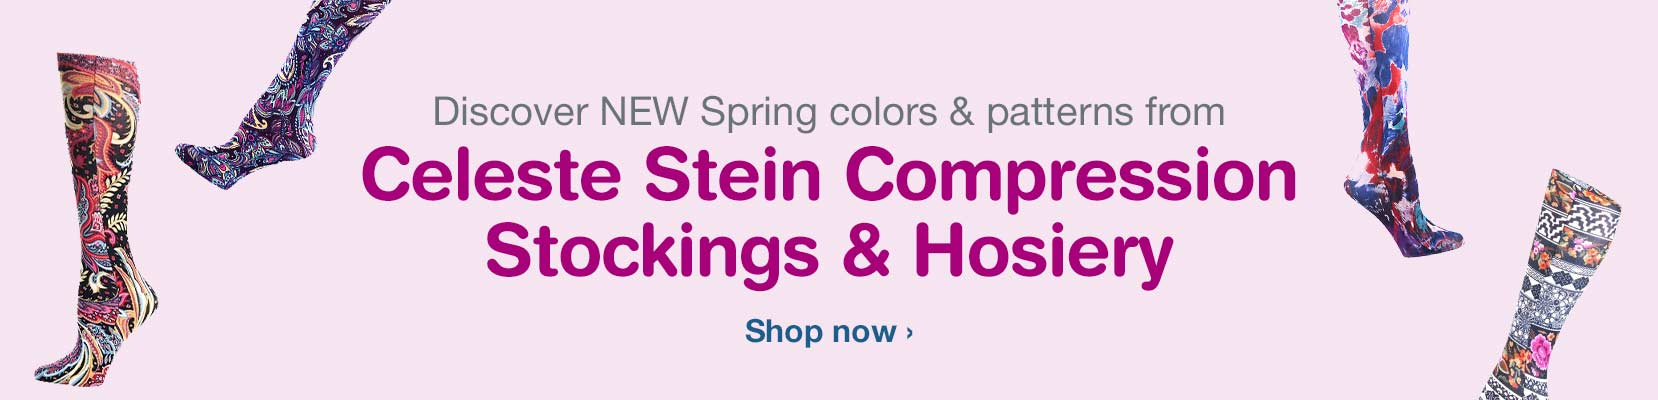 Discover NEW Spring colors & patterns from Celeste Stein Compression Stockings & Hosiery. Shop now.